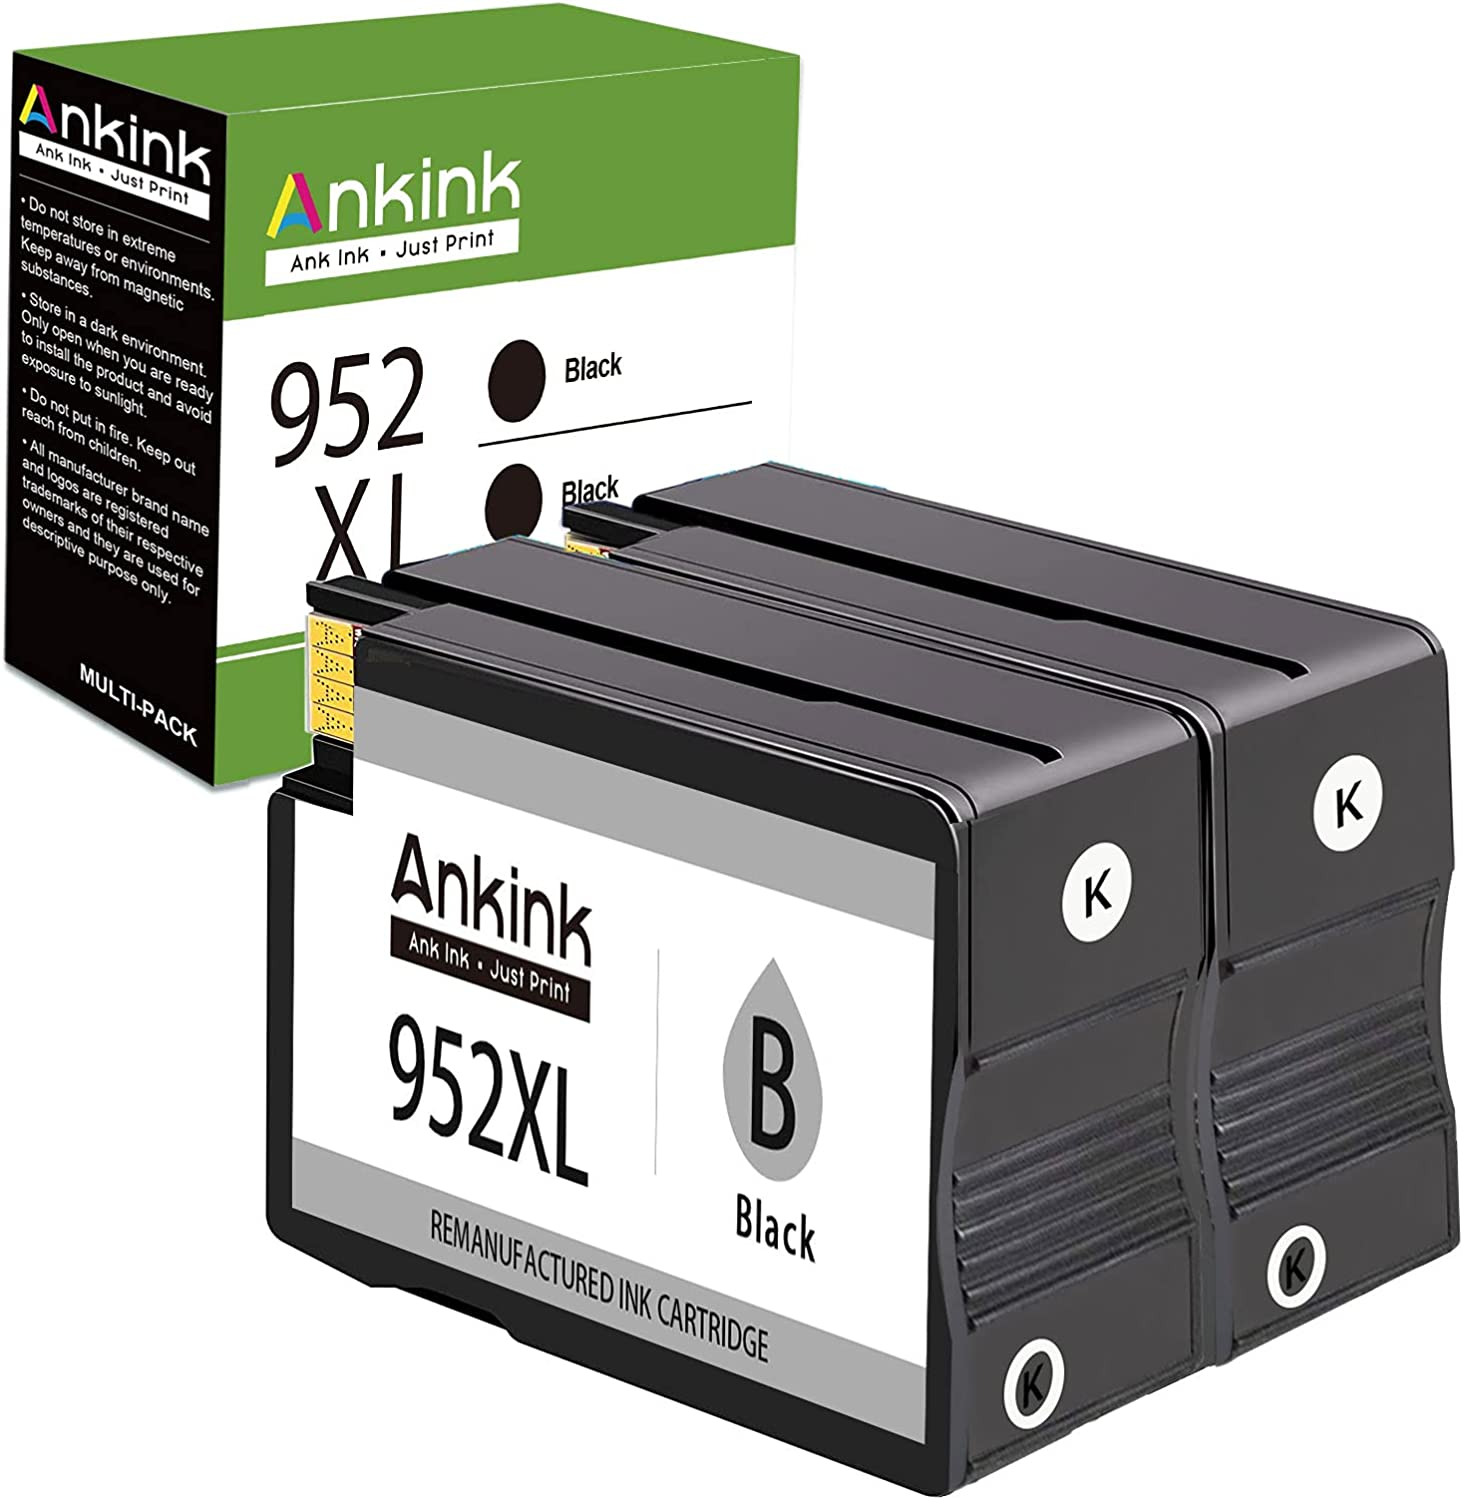 Ankink Compatible Black Ink Cartridge Replacement for HP 952 XL 952XL High Yield Fit for OfficeJet Pro 8710 8720 7740 8715 8740 8715 7720 8725 8702 8216 Printers HP952 HP952XL Combo (2 Black 2 Pack)